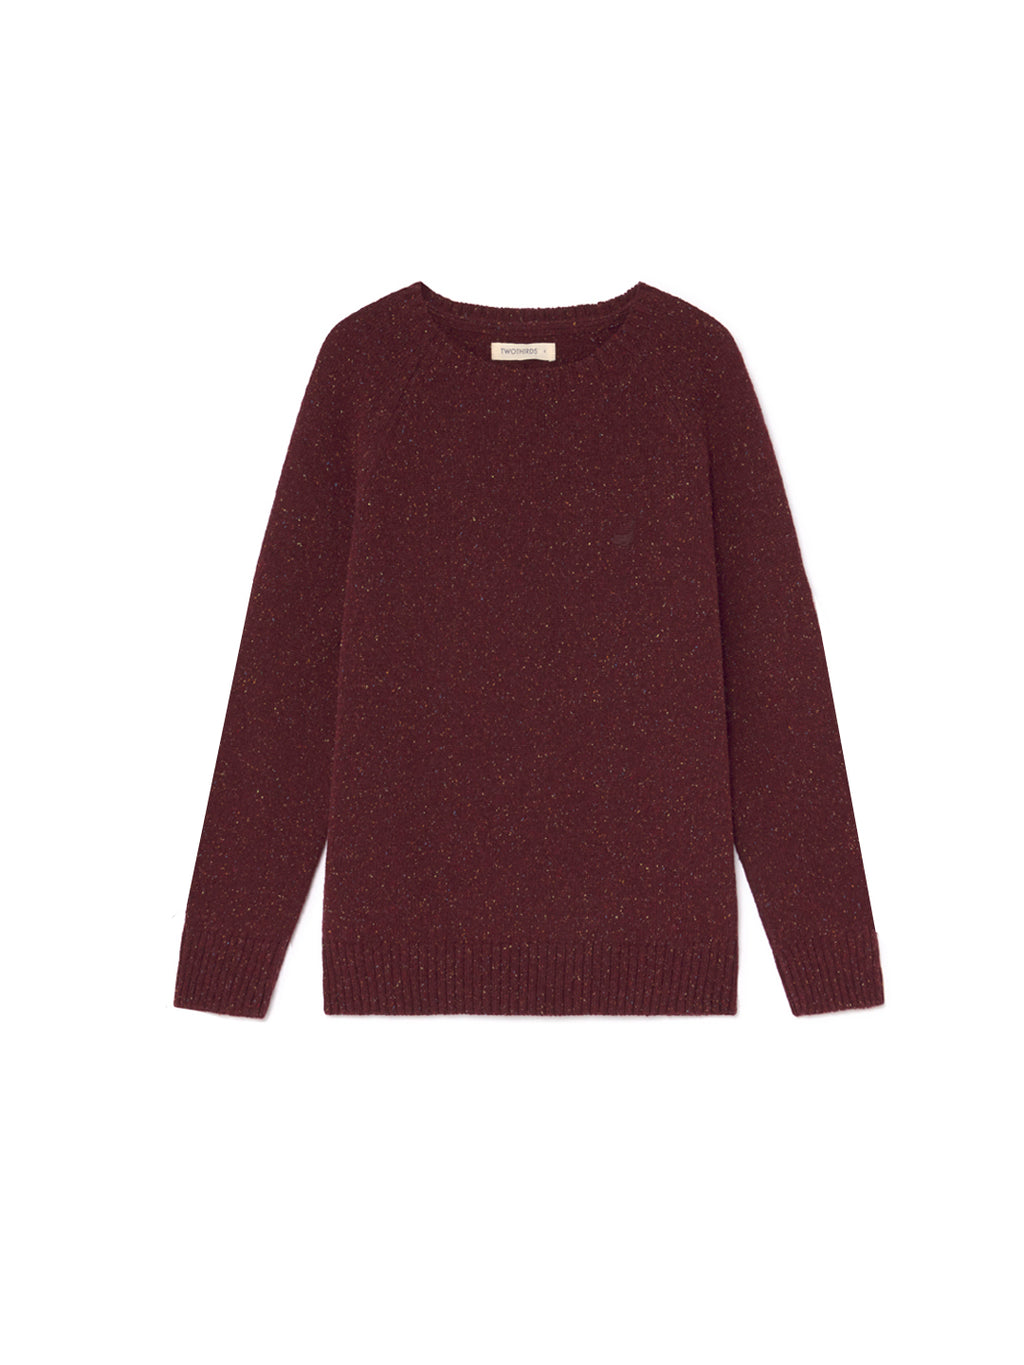 TWOTHIRDS Mens Knit: Anaa - Burgundy front